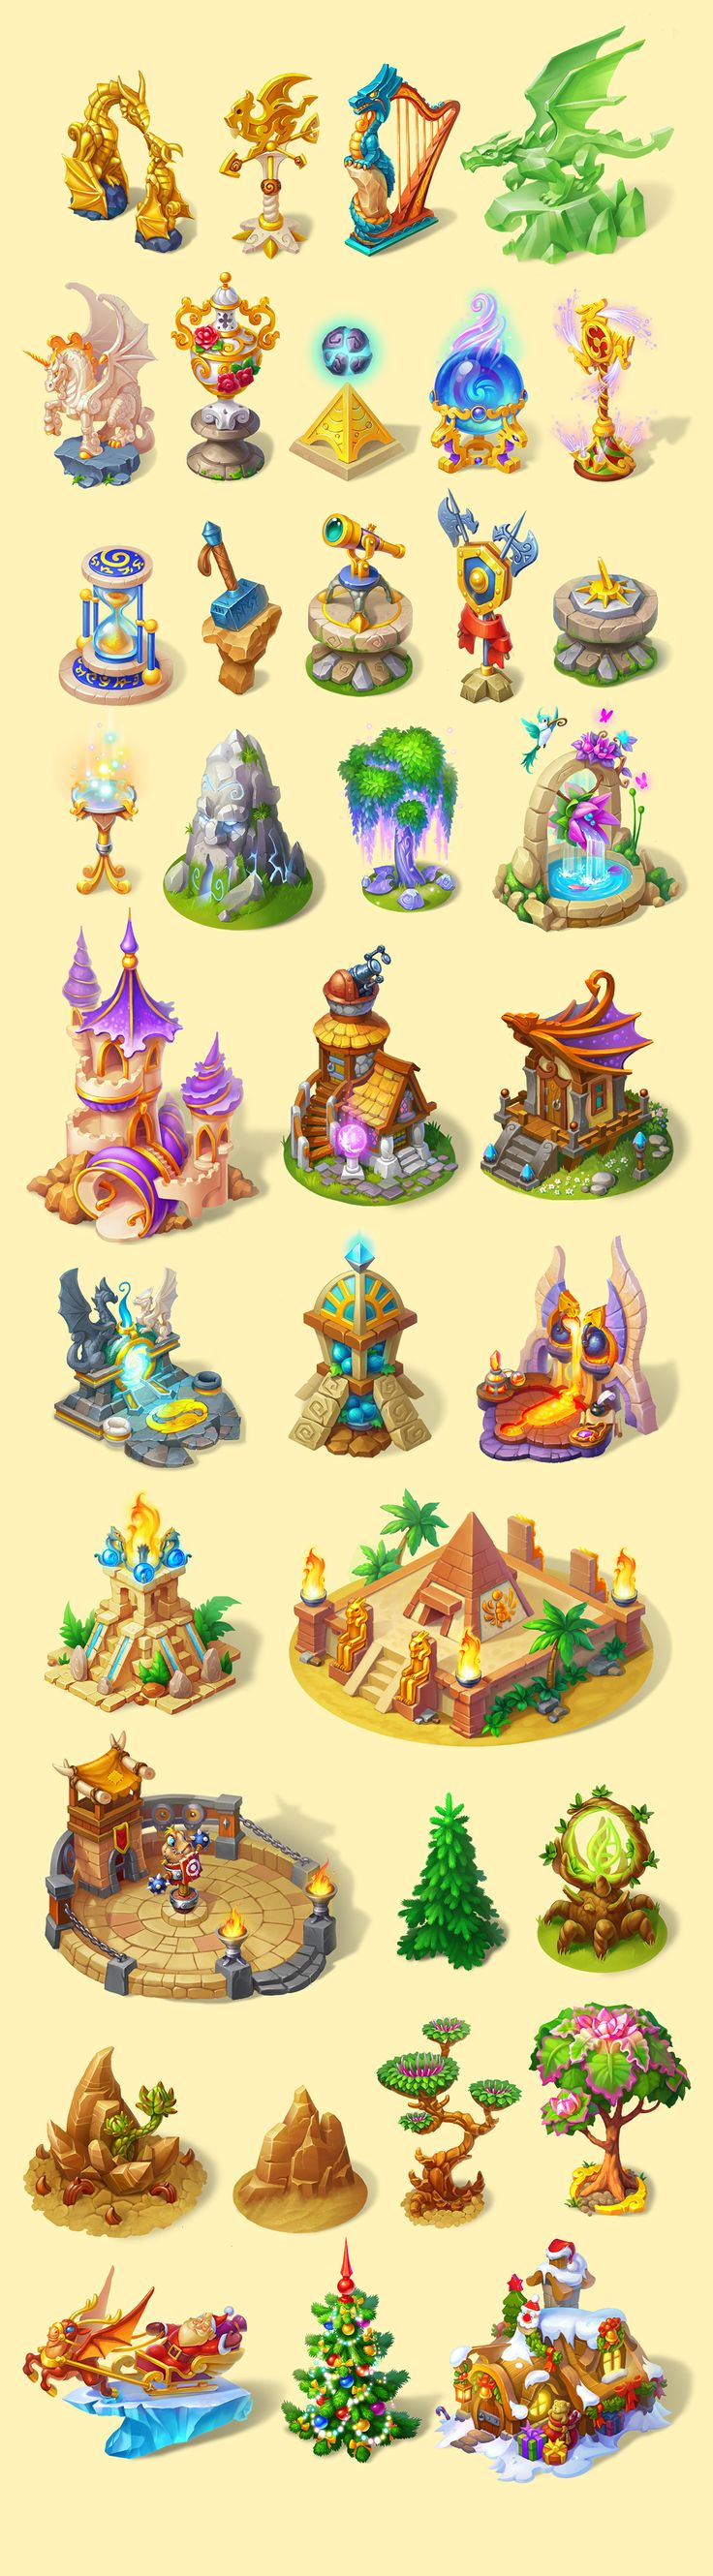 Dragons World game on Behance